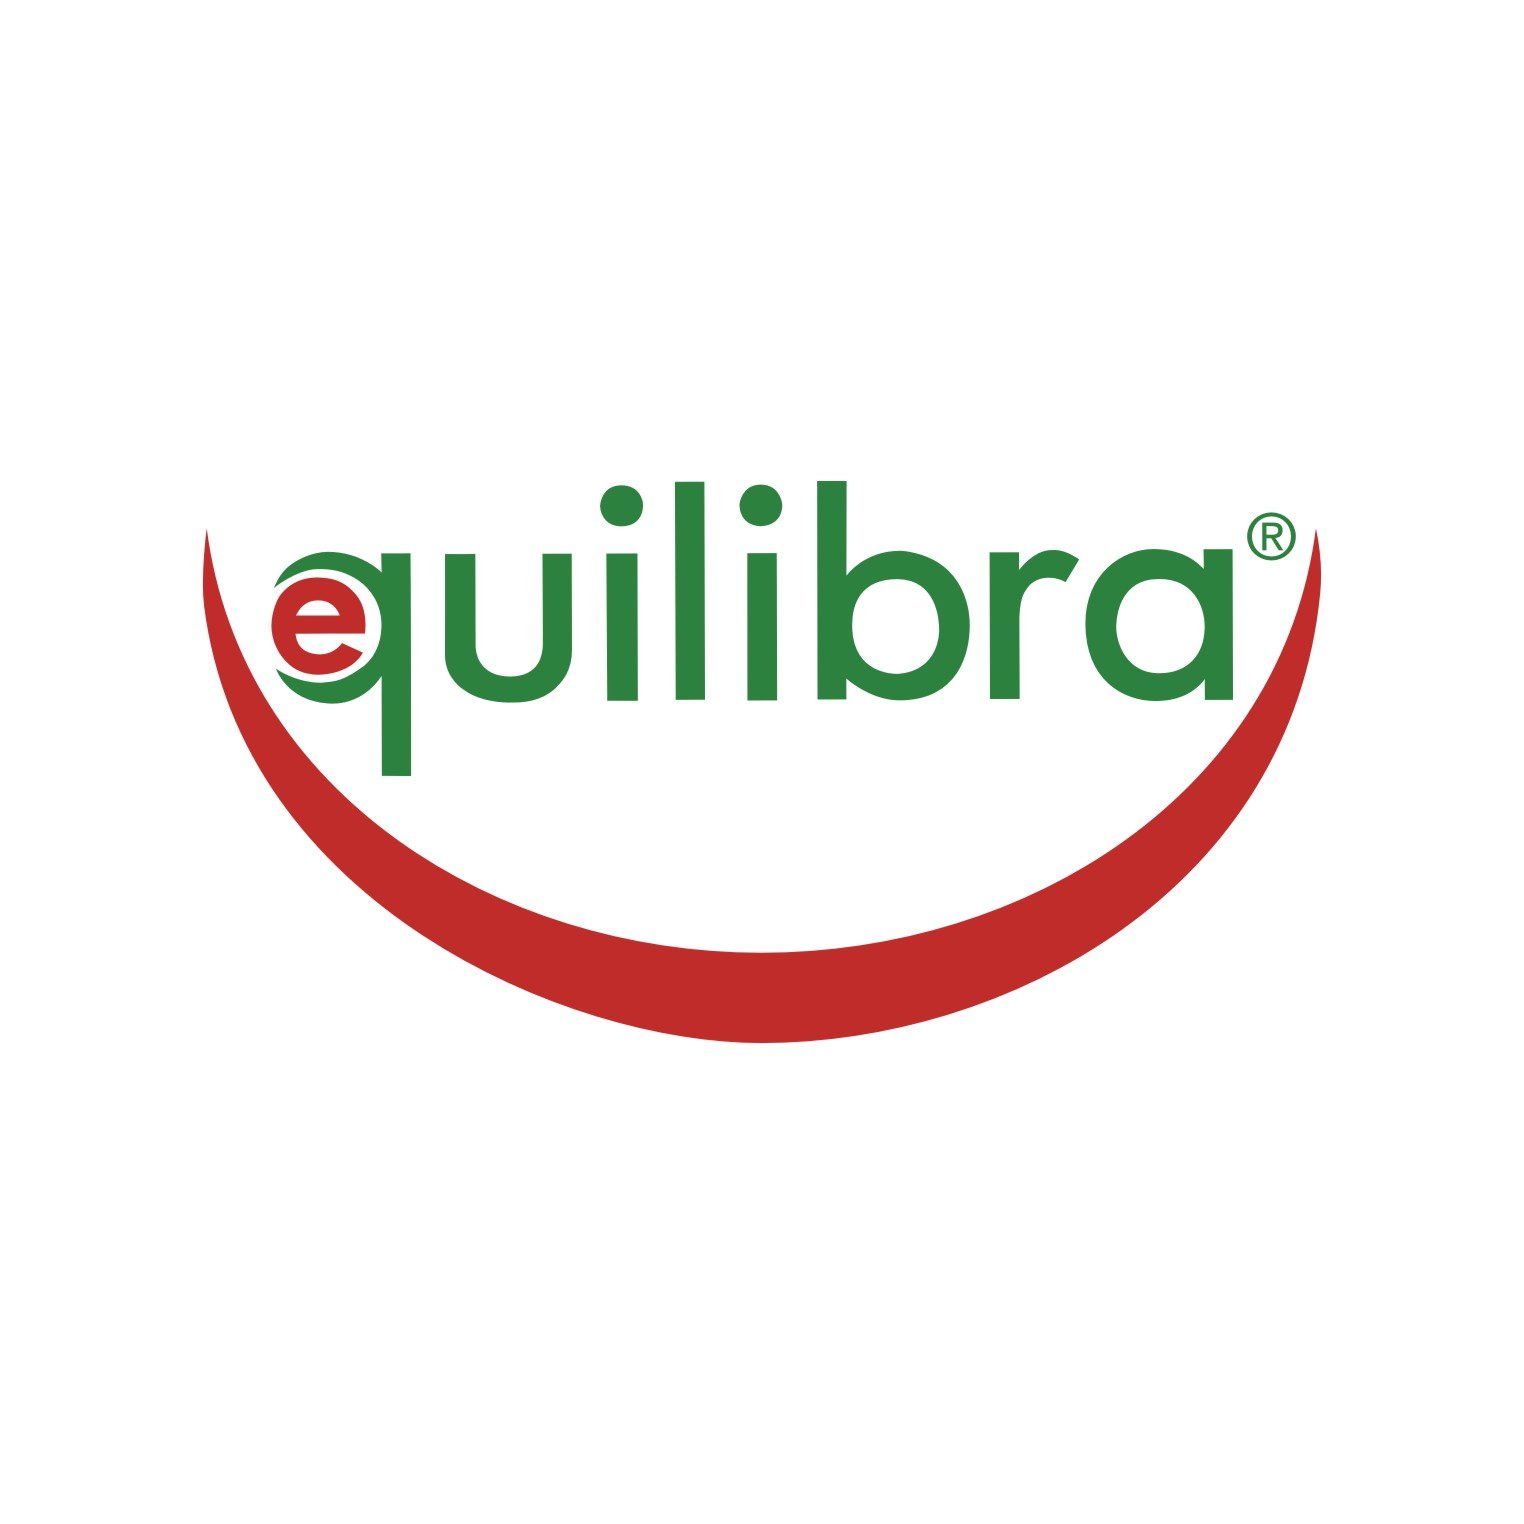 http://www.equilibra.pl/